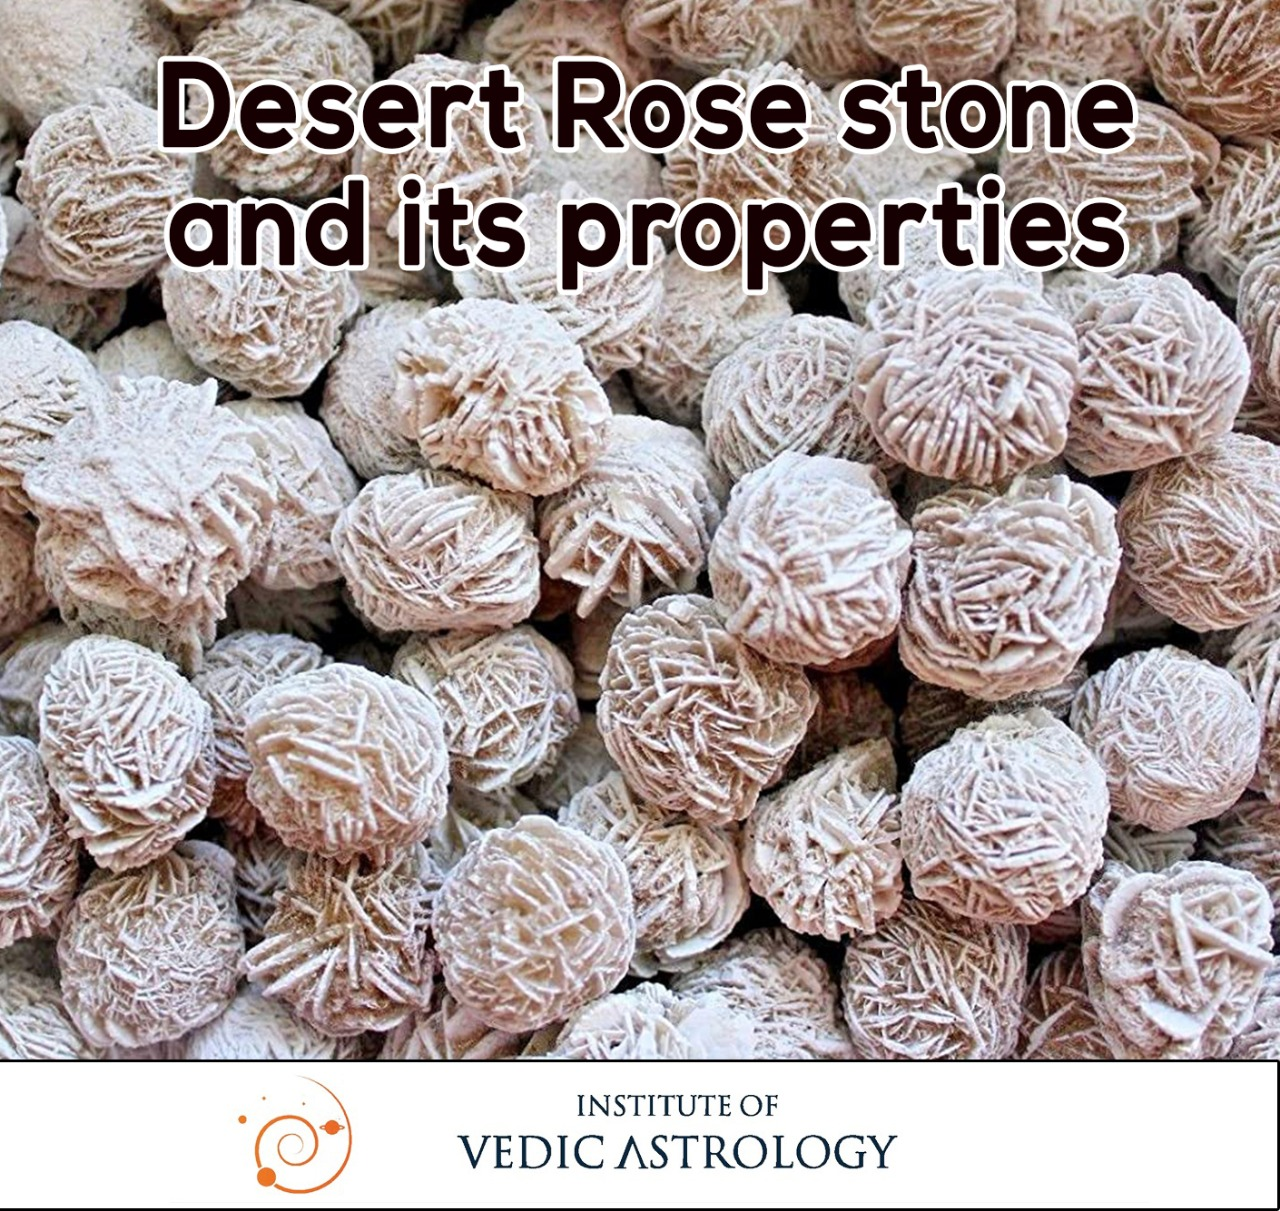 Desert Rose Stone and its properties